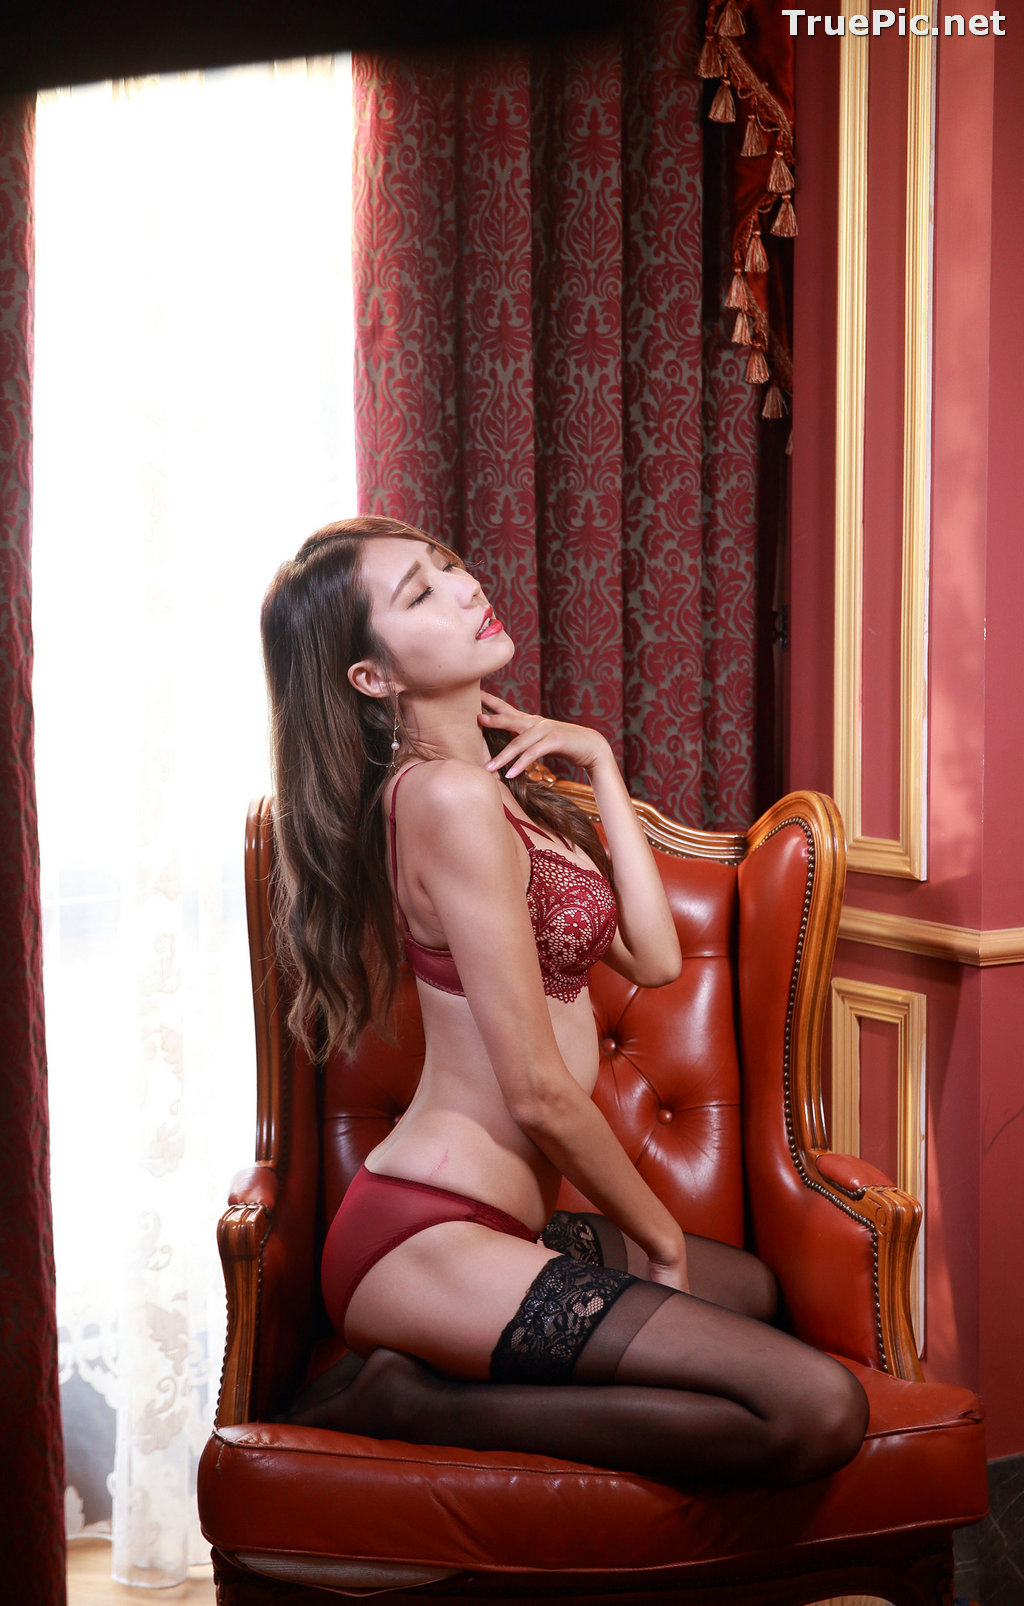 Image Taiwanese Long Legs Model - 黃韻斐 - Sexy Girl In Lingerie At Room - TruePic.net - Picture-8